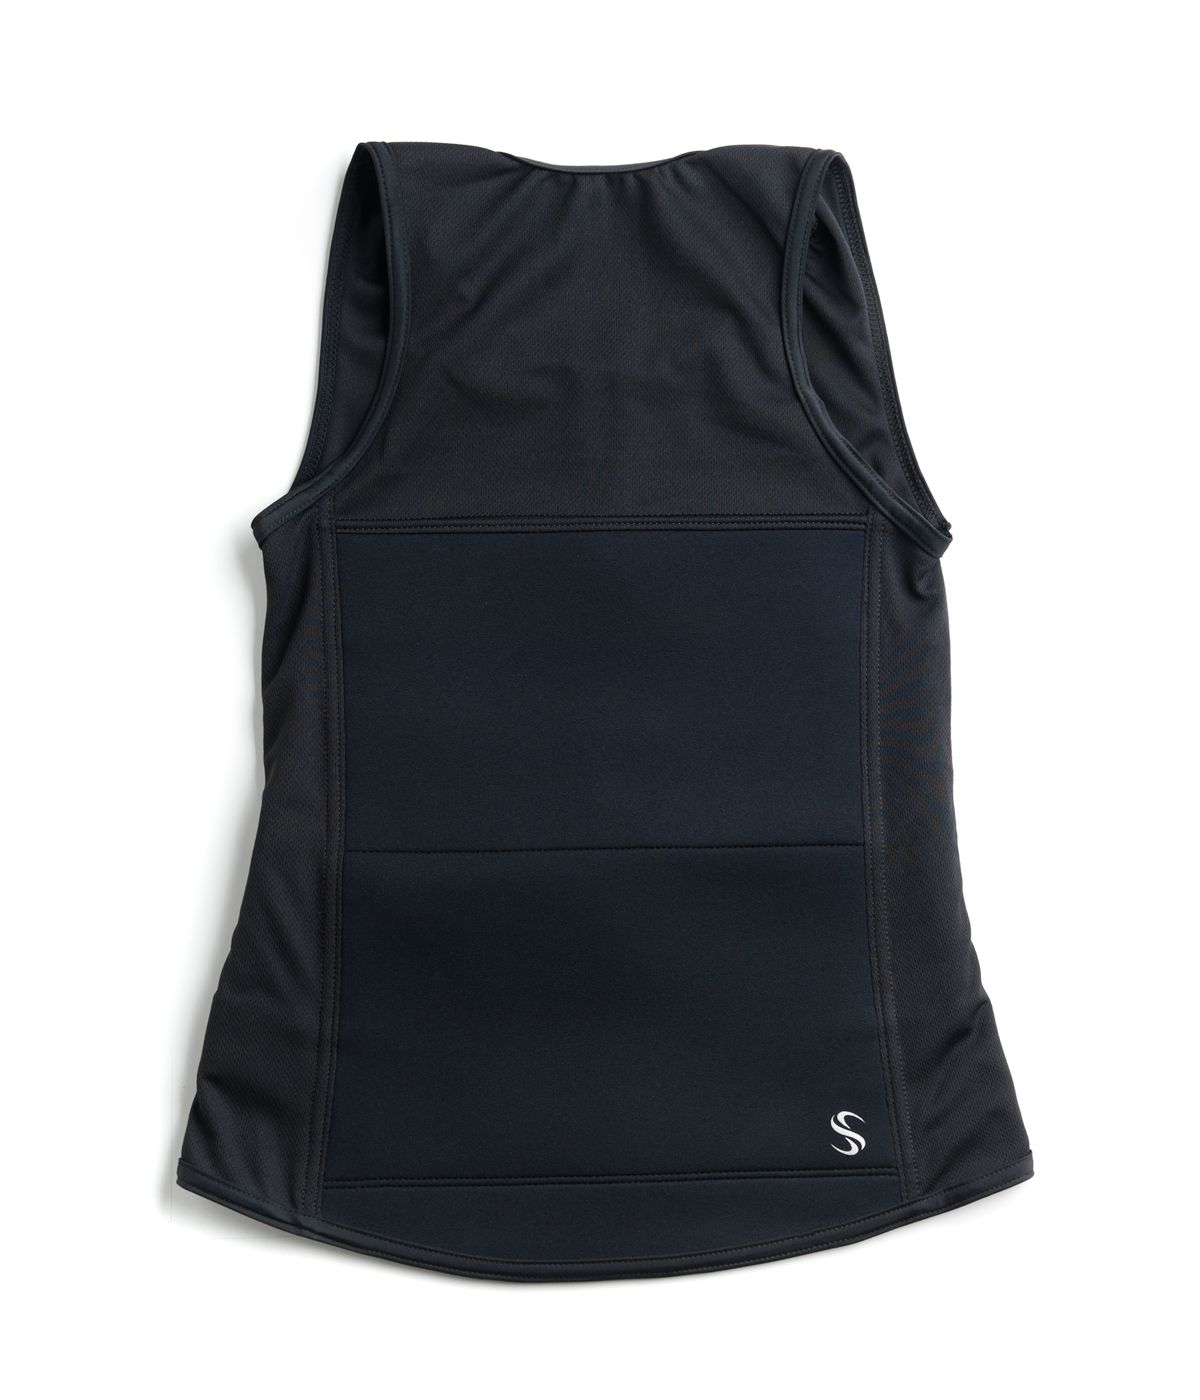 Spand-Ice | Hot + Cold Therapy | Revive Tank - Womens Back